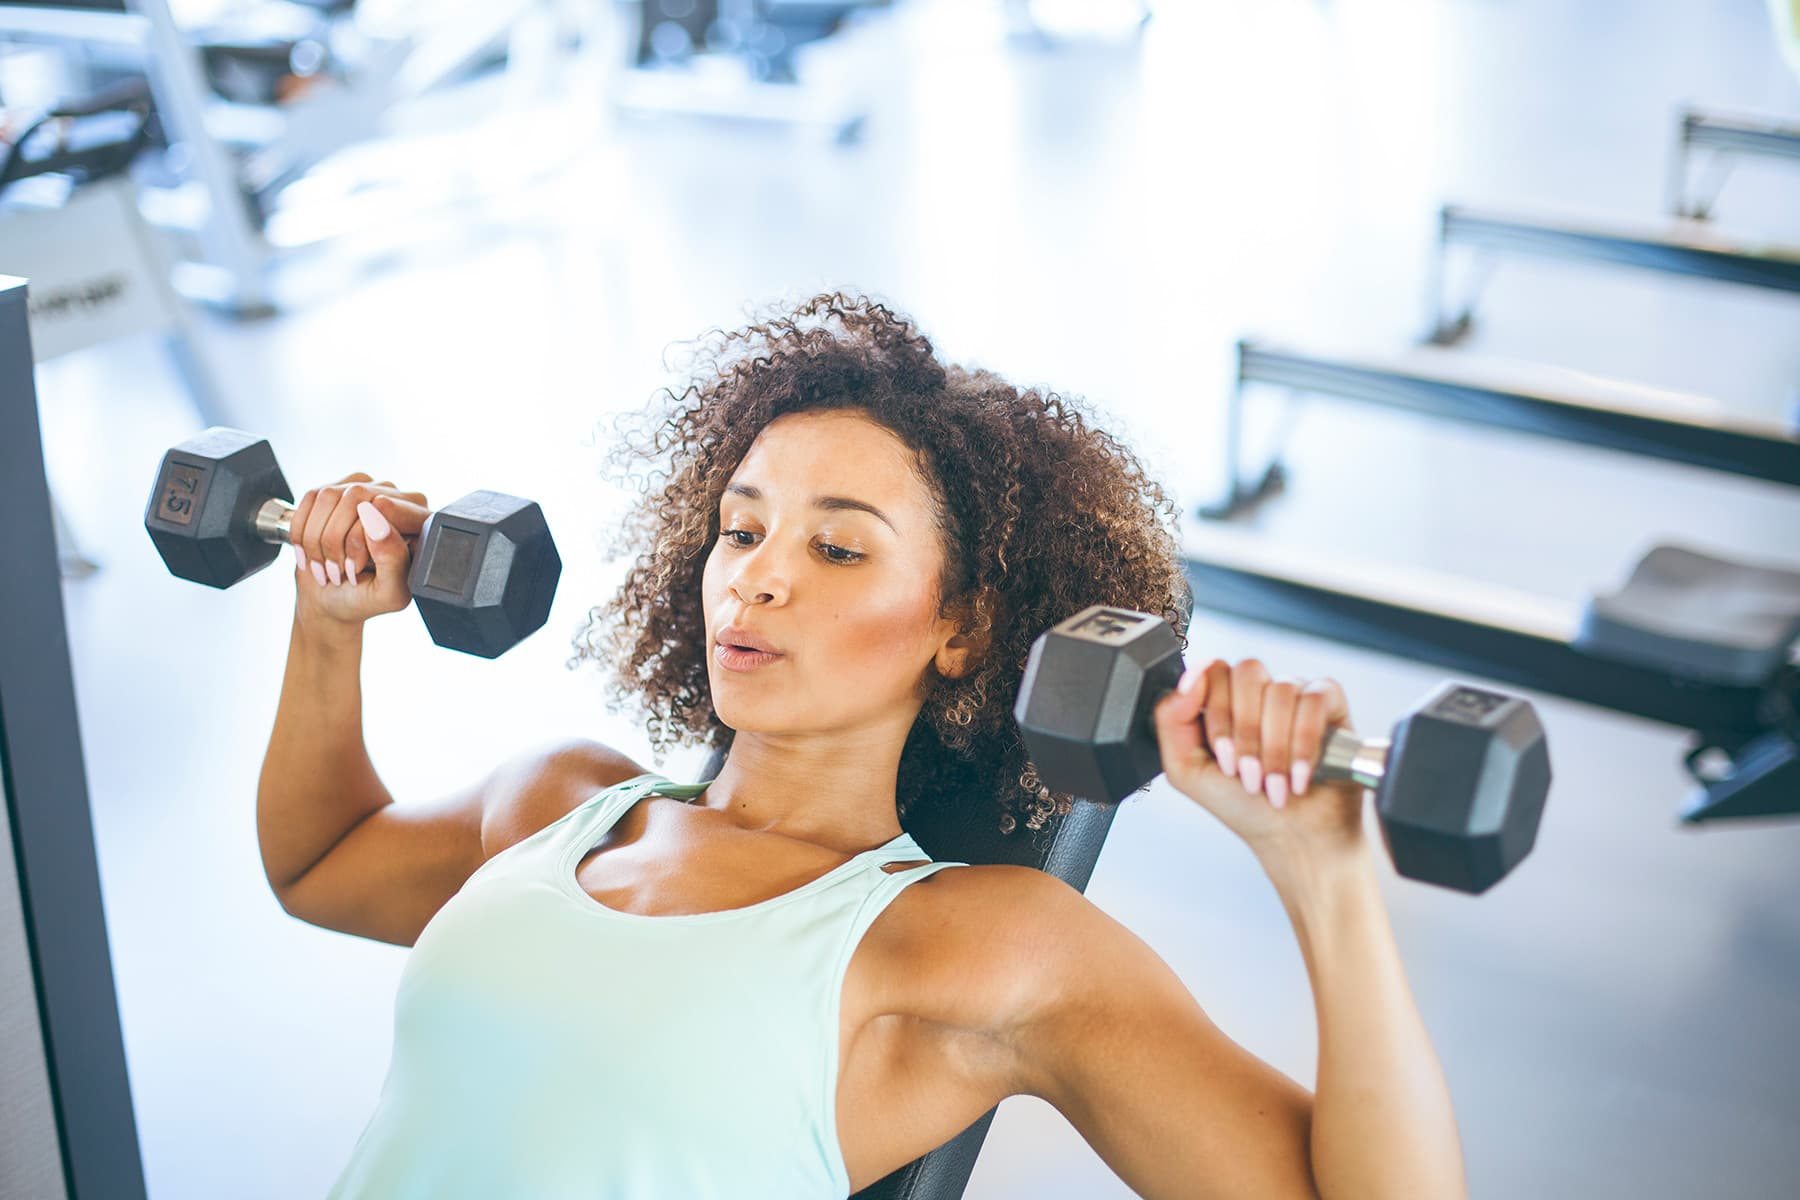 even-exercise-may-not-ease-pandemiclinked-stress